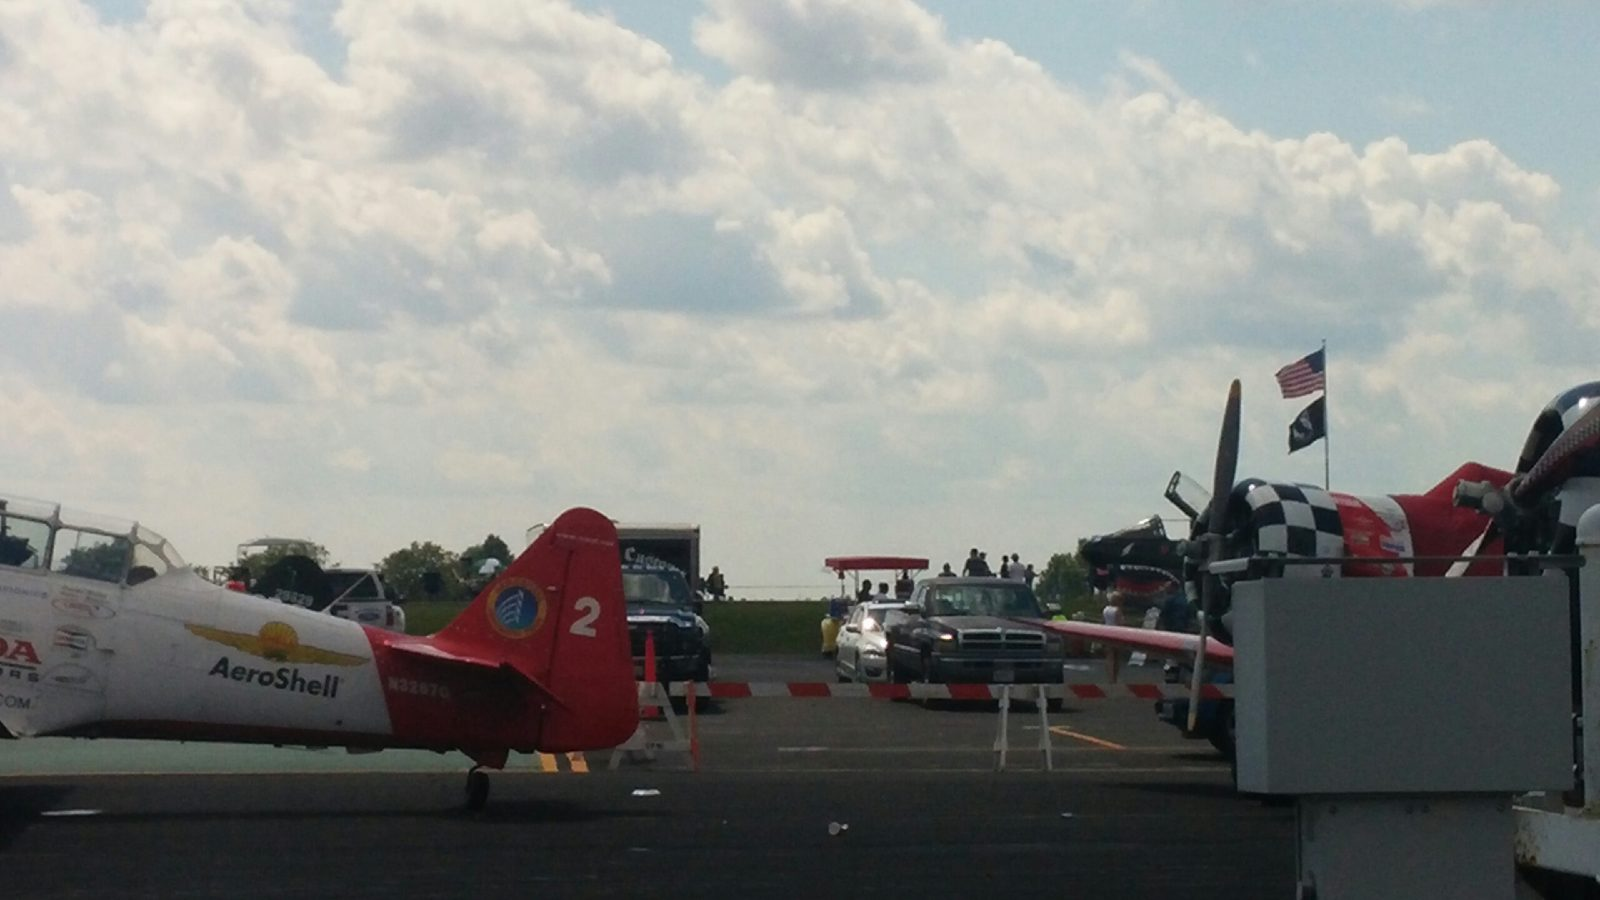 UPDATE: Reported plane crash at Cameron Air Show